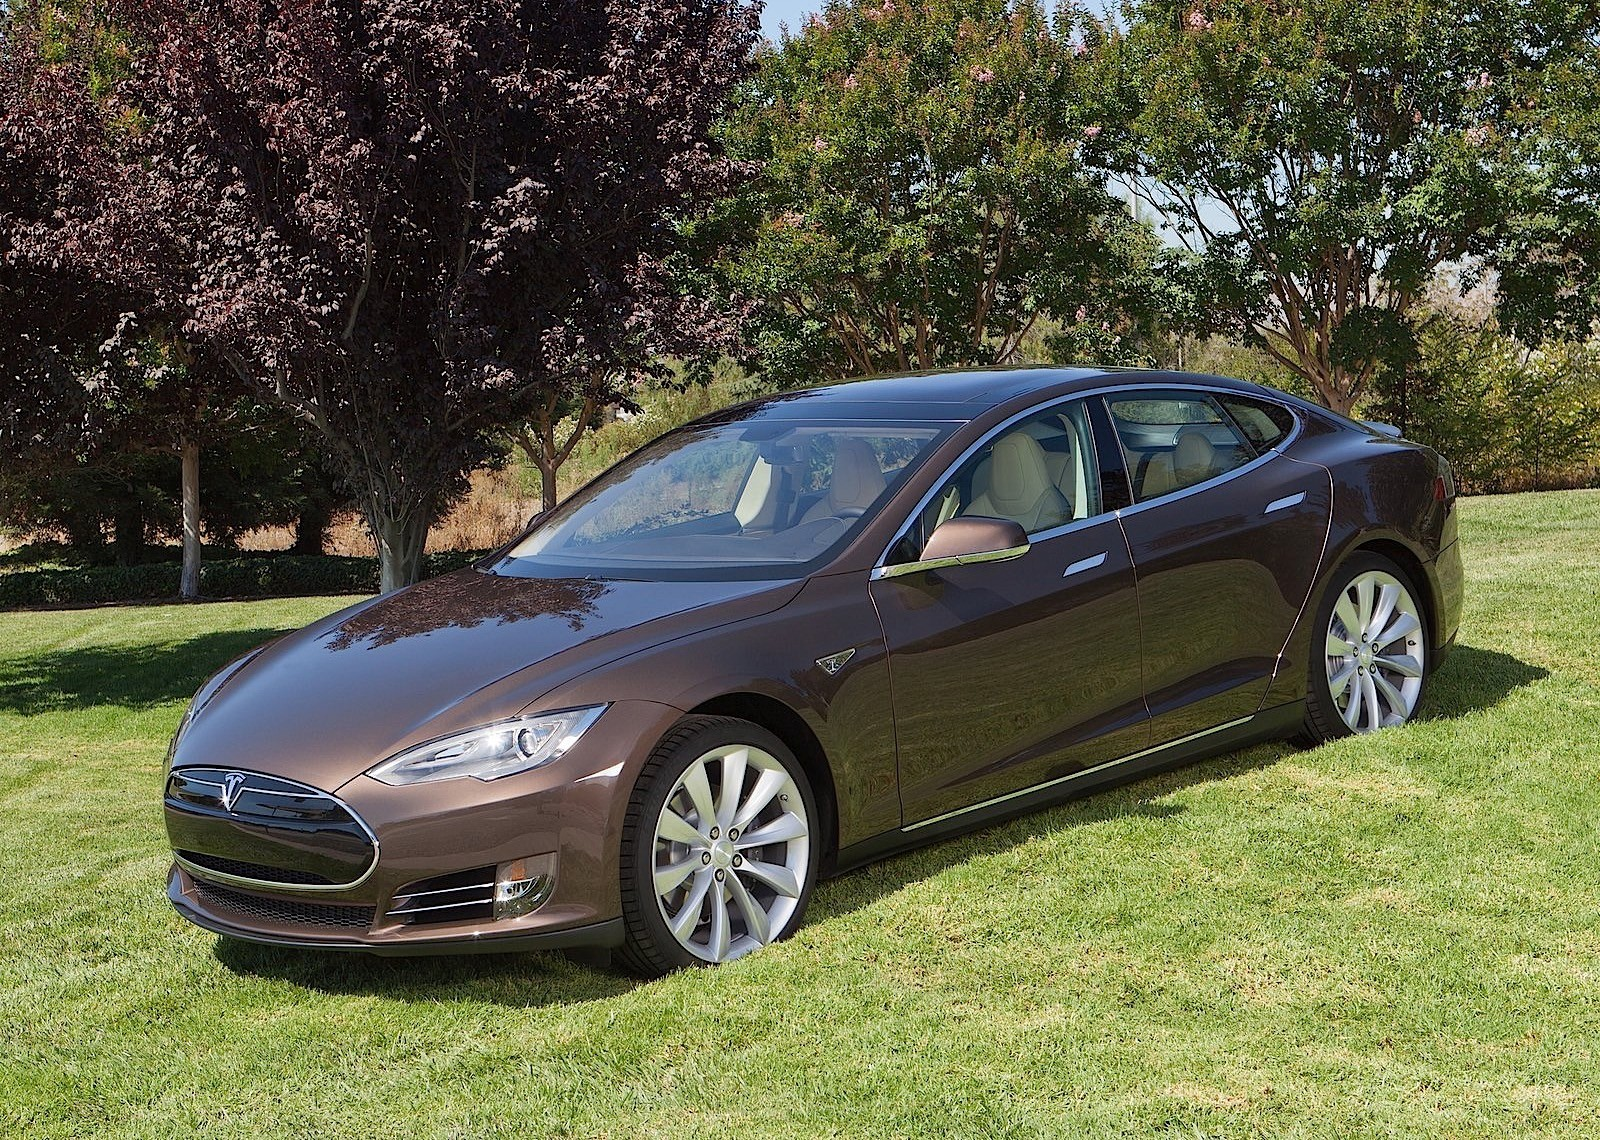 tesla motors model s specs photos 2012 2013 2014 2015 2016 autoevolution. Black Bedroom Furniture Sets. Home Design Ideas